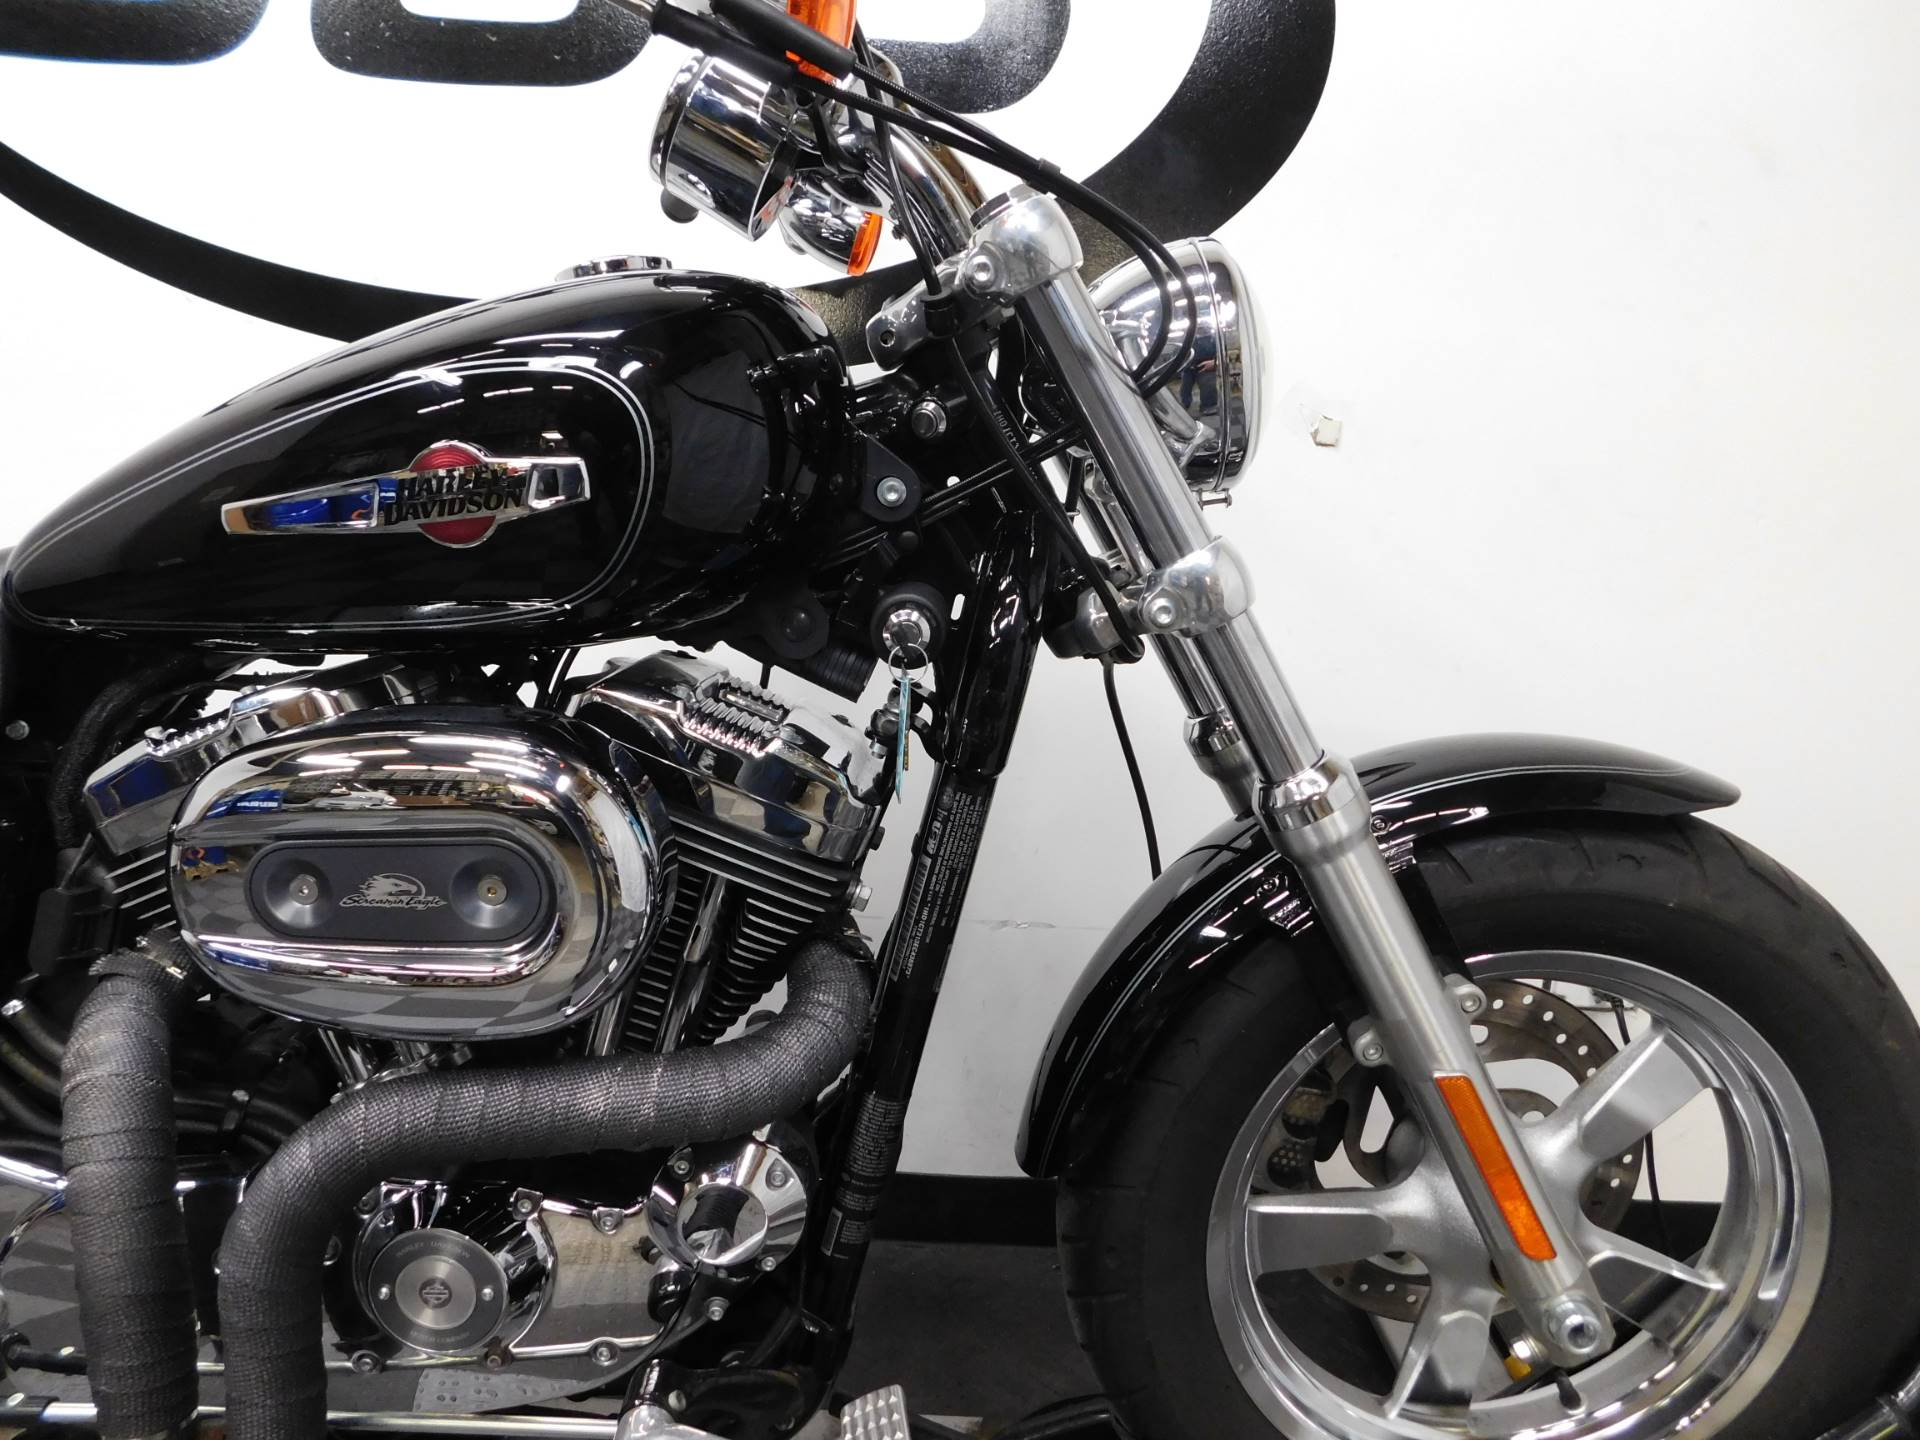 2014 Harley-Davidson 1200 Custom in Eden Prairie, Minnesota - Photo 26